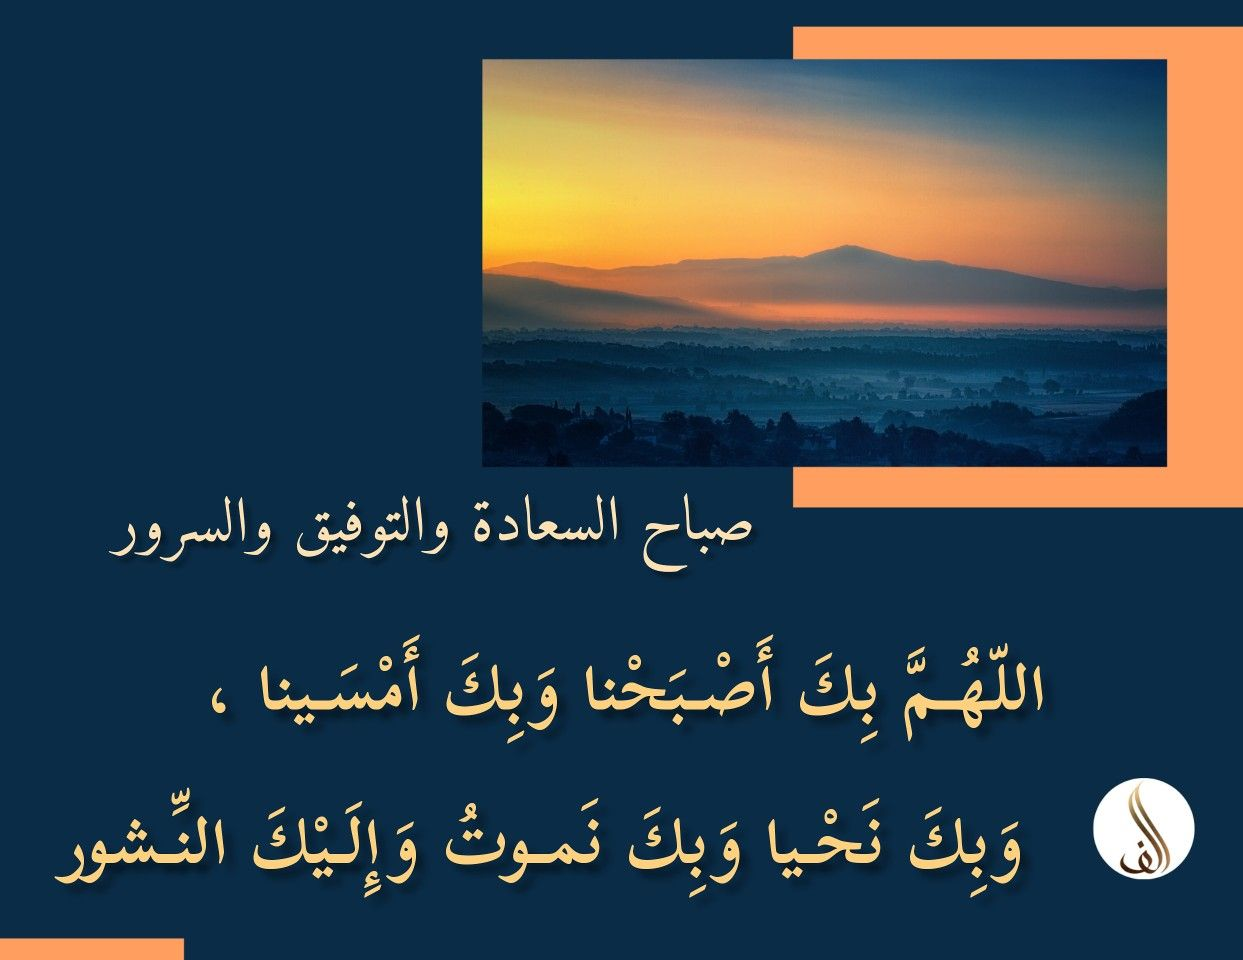 Elif By Rubina Shakir In 2020 Quran Quotes Islamic Messages Islam Hadith